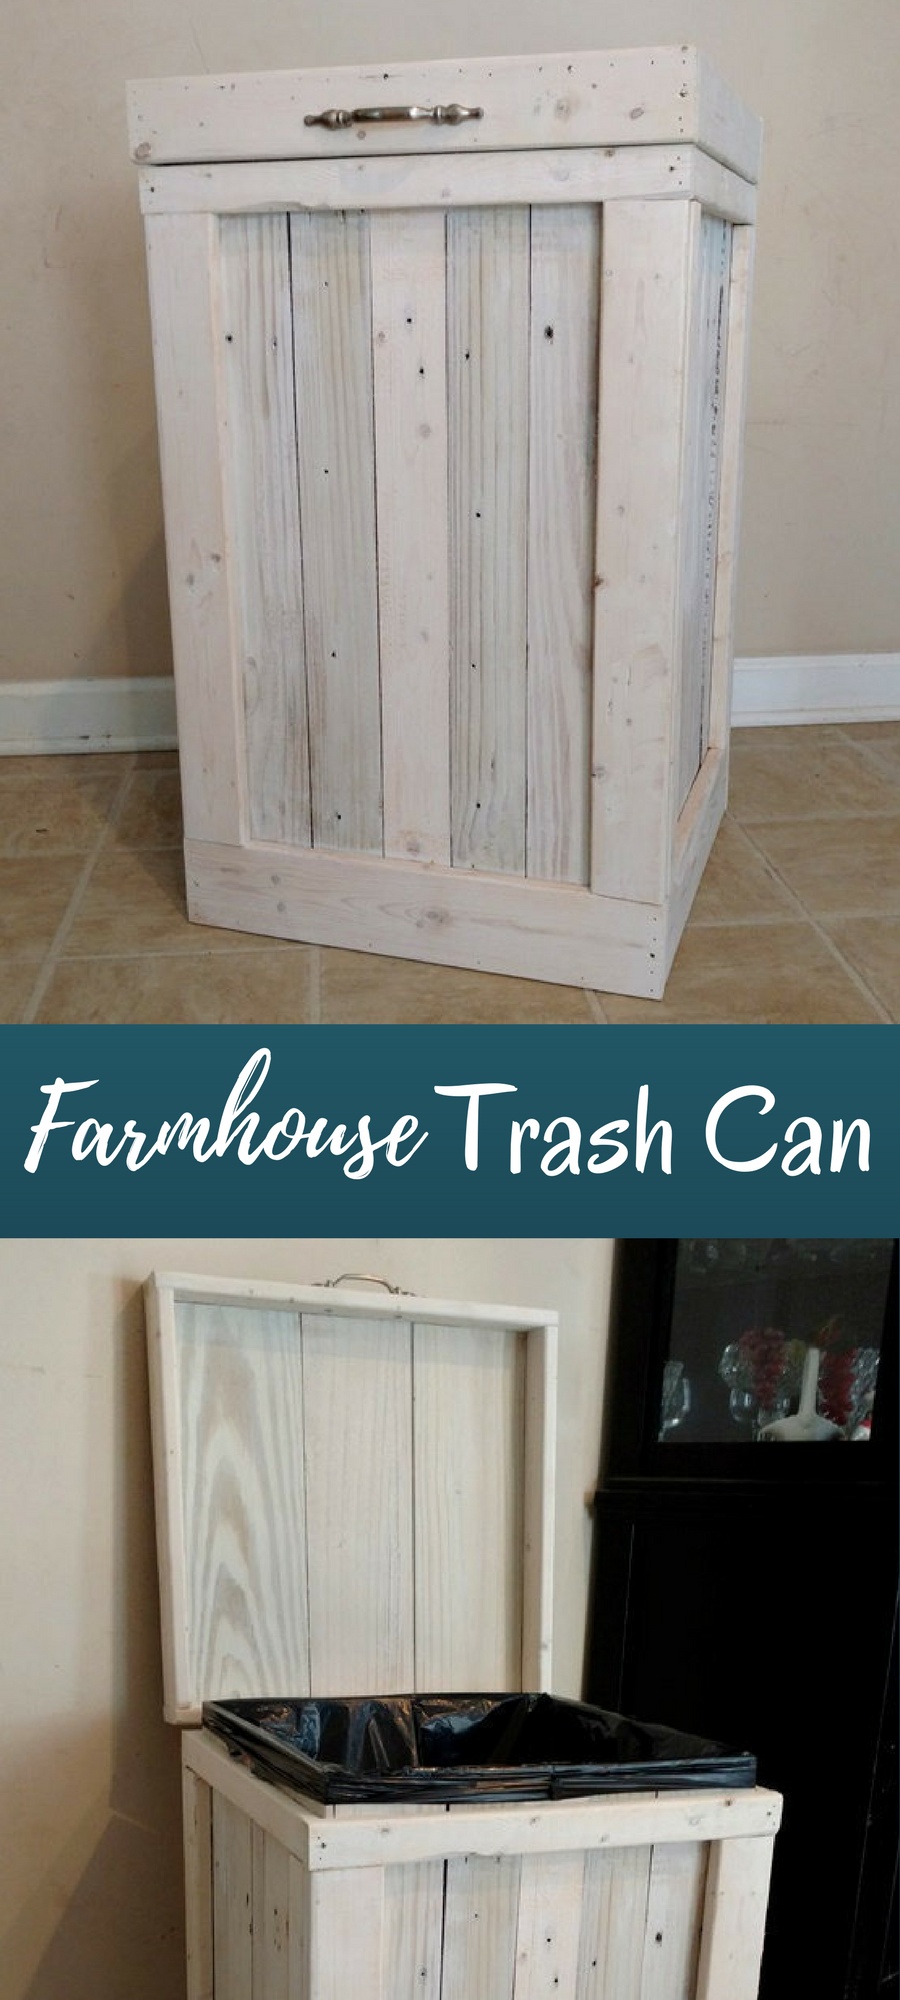 11 Repurposed Furniture Projects In Time For Father's Day | Repurposed  furniture, Furniture projects and Repurposed